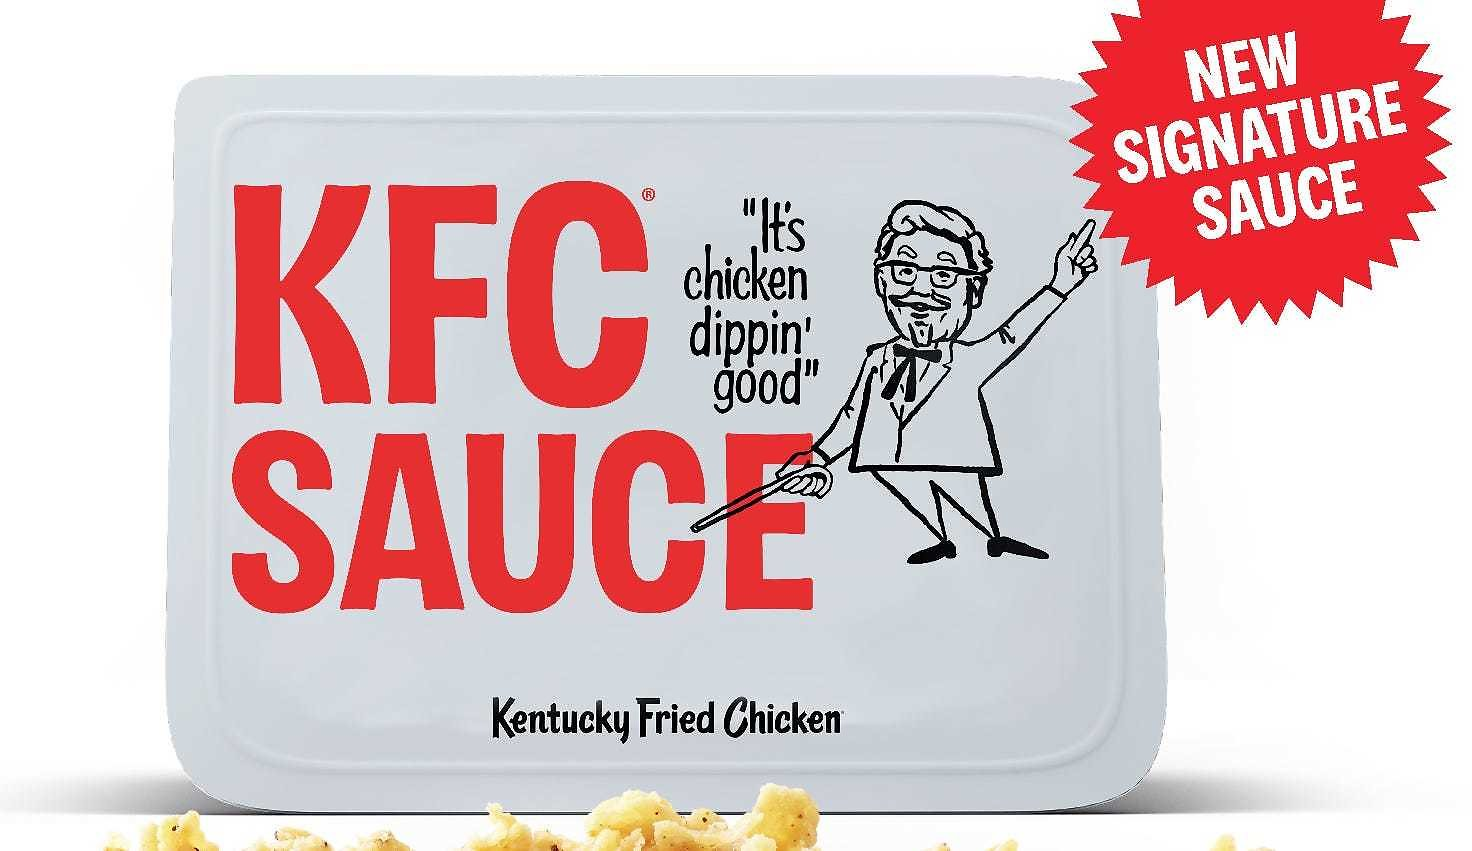 Kentucky Fried Chicken Adding KFC Sauce: New Tangy, Sweet and Smoky Signature Dipping Sauce Launches Monday